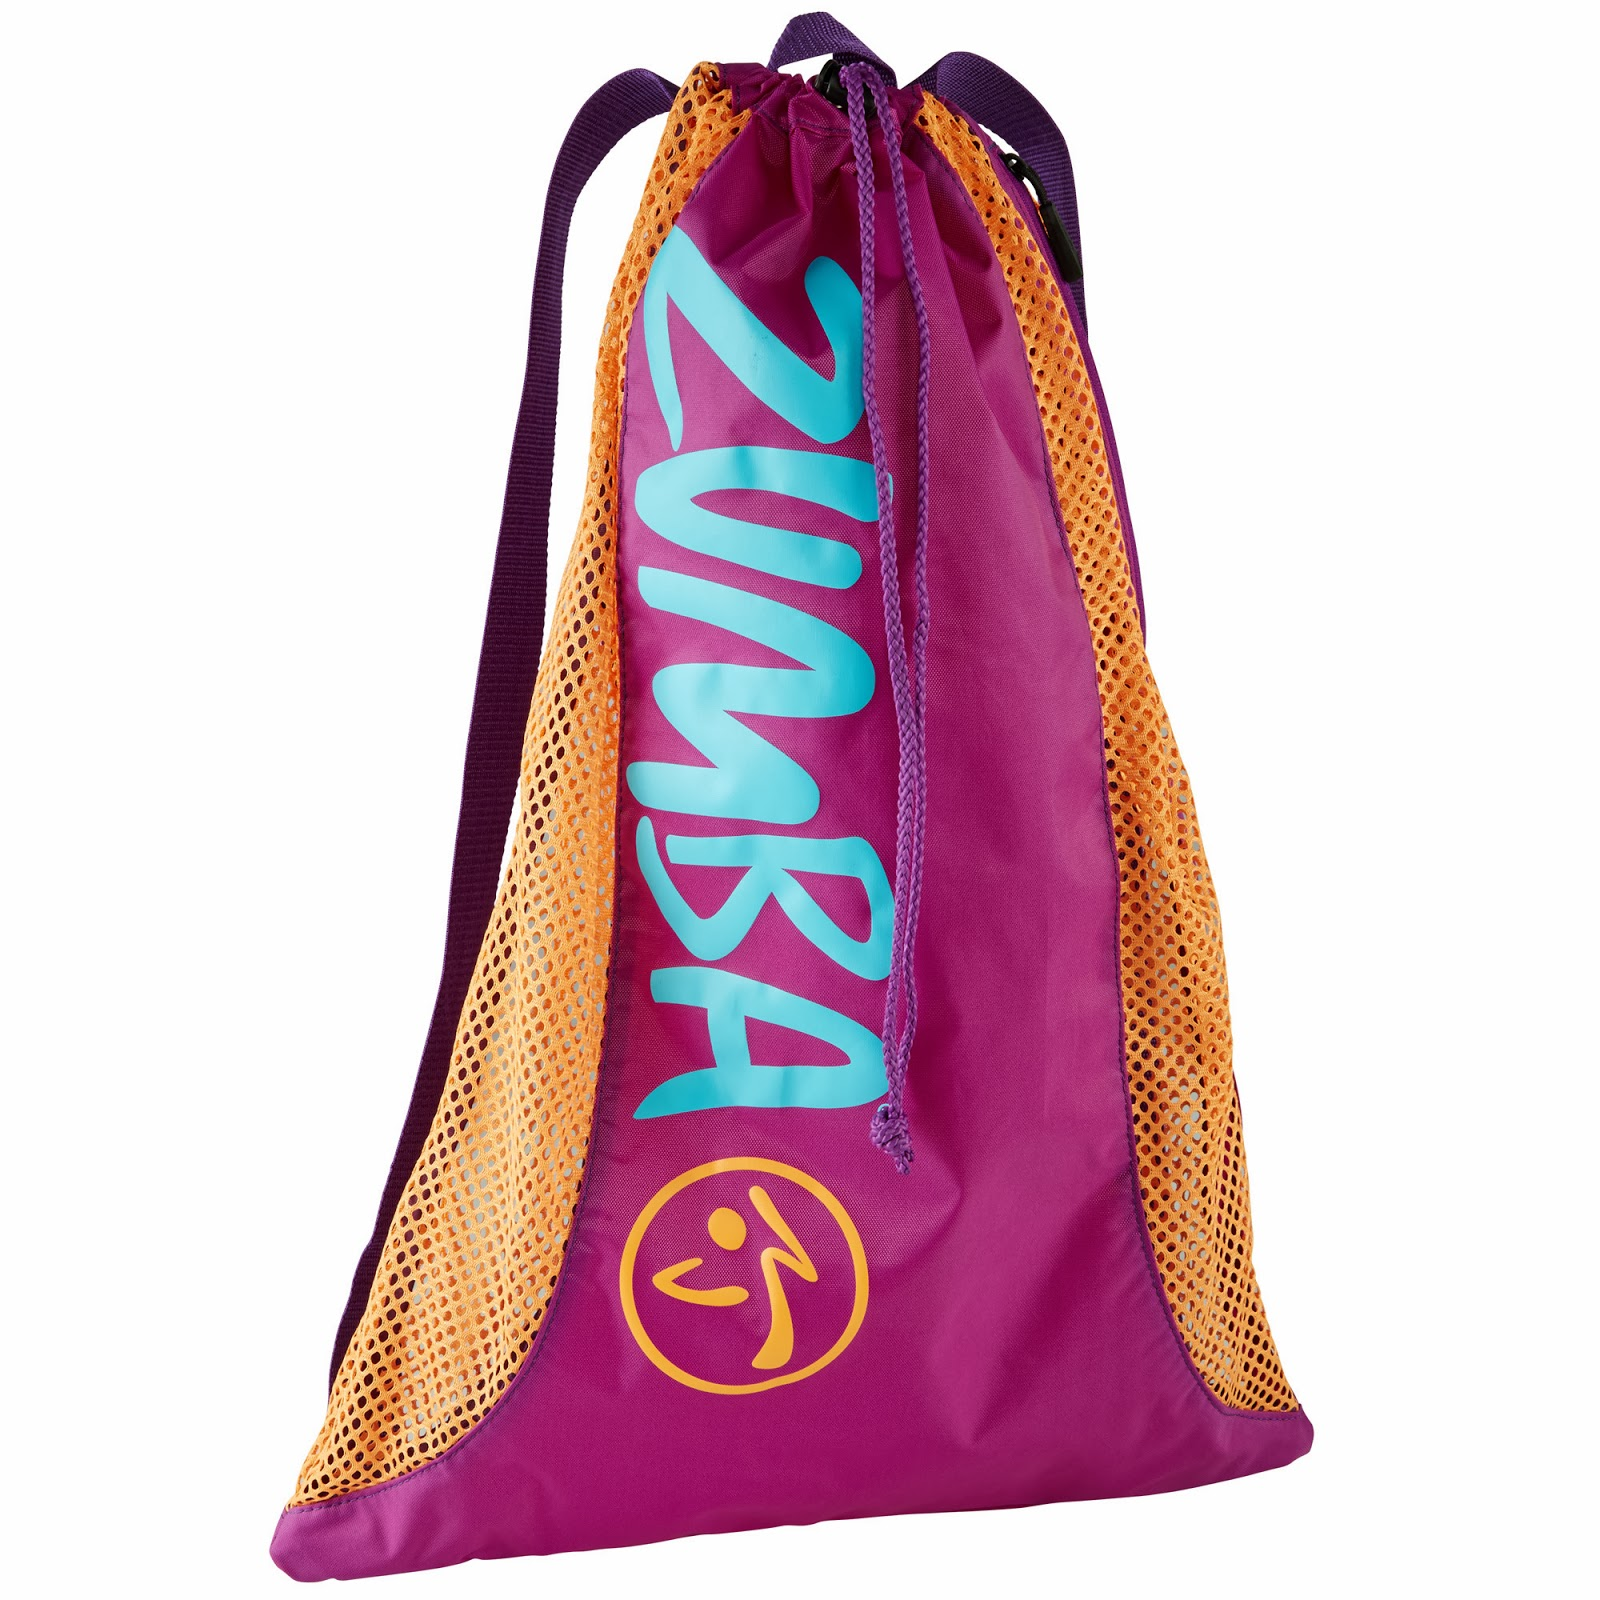 http://www.zumba.com/en-US/store-zin/US/product/together-we-mech-bag?color=Vivid%20Violet